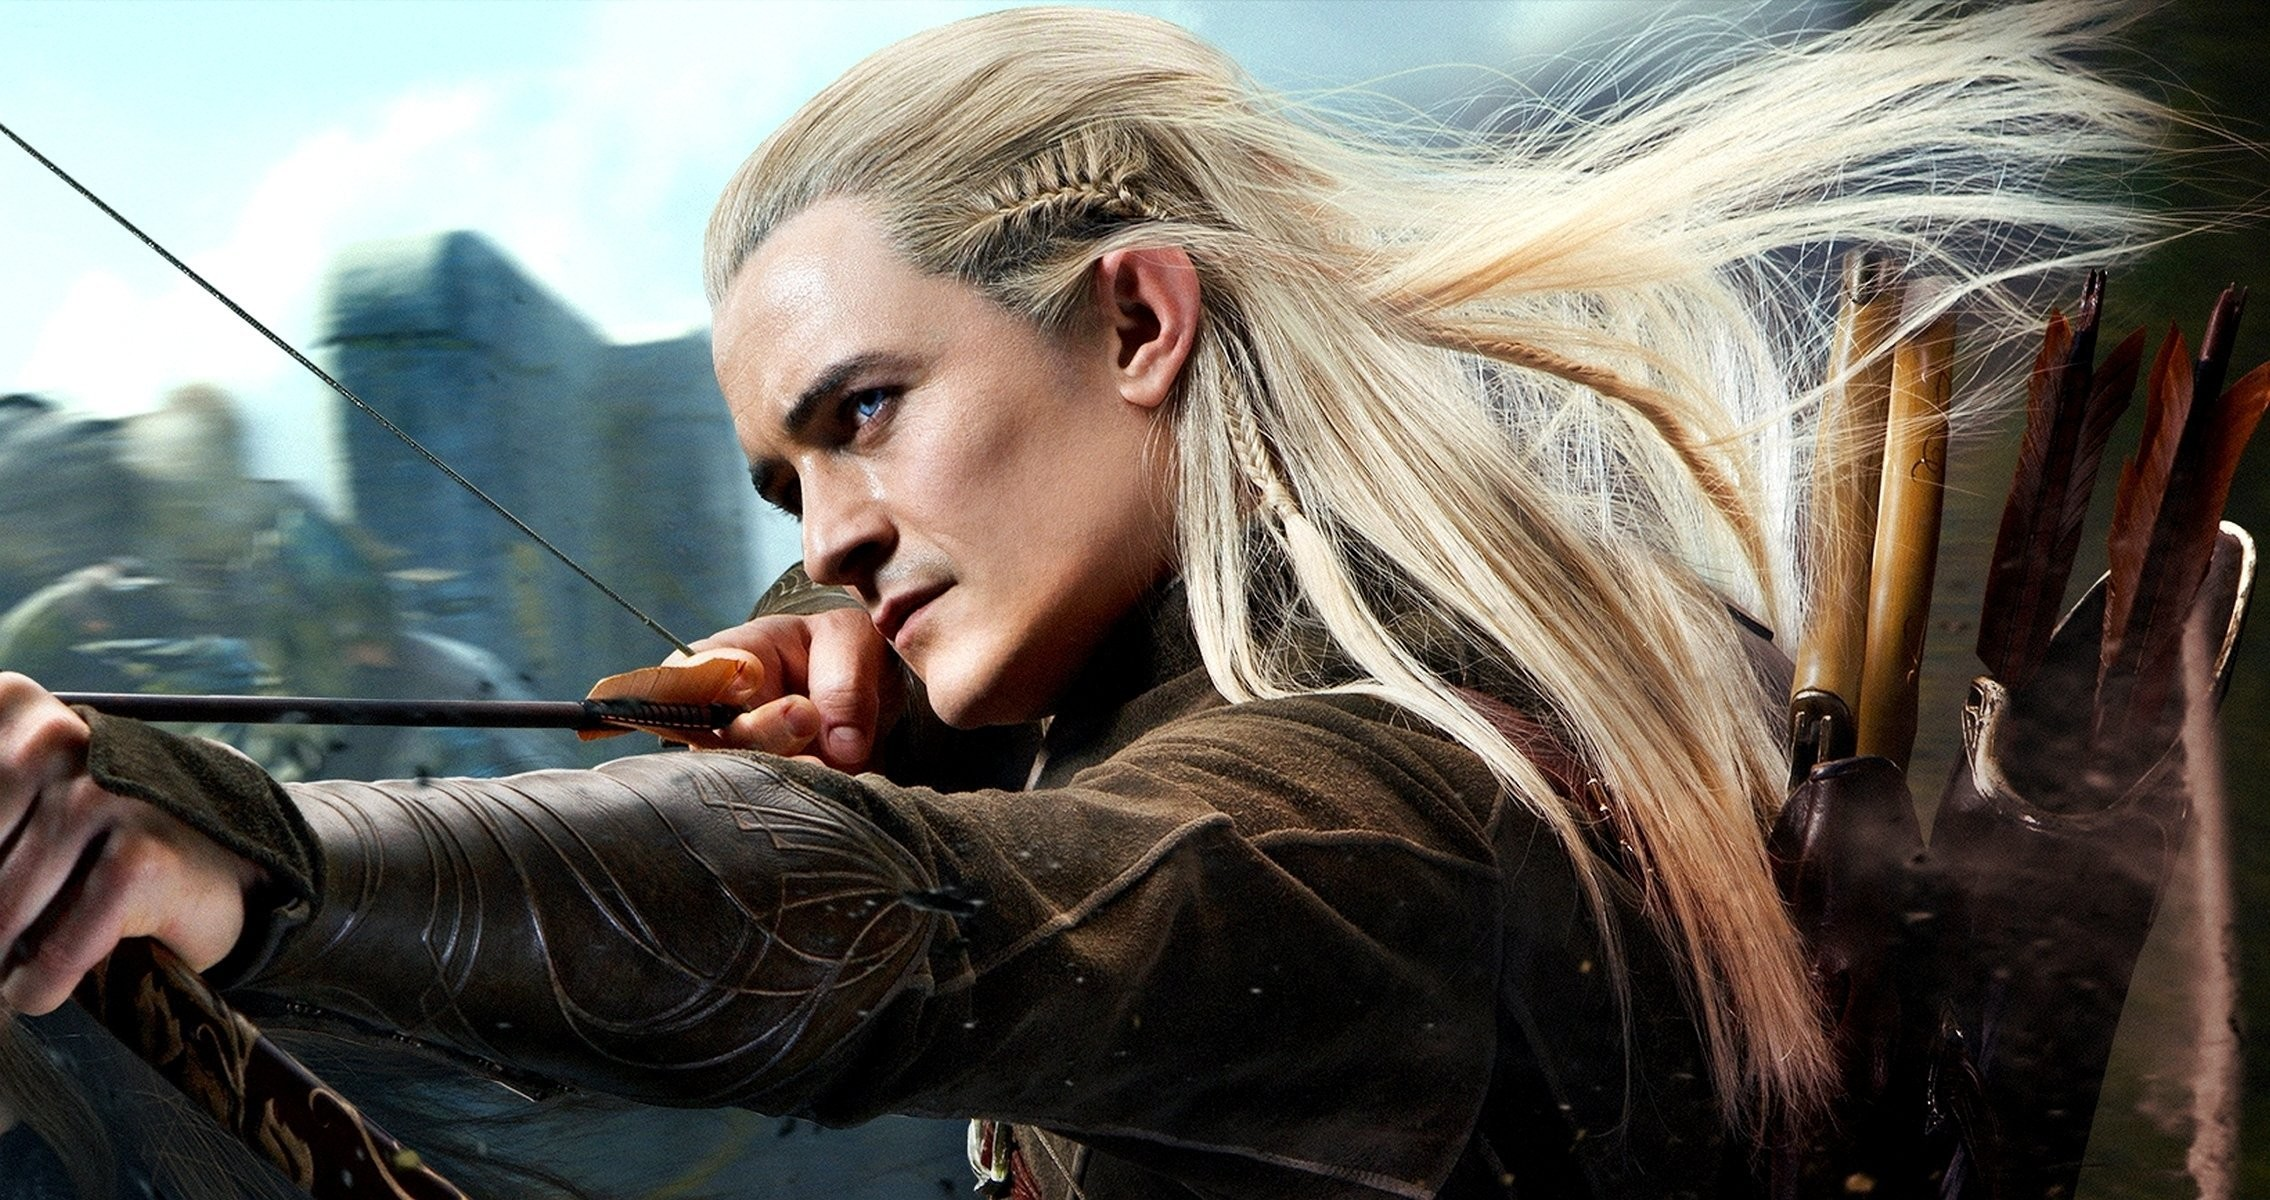 2270x1200 ... hobbit: the desolation of smaug orlando bloom elf archer legolas  mirkwood hobbies or there and back torment boom quiver shot forest mirkwo  HD wallpaper